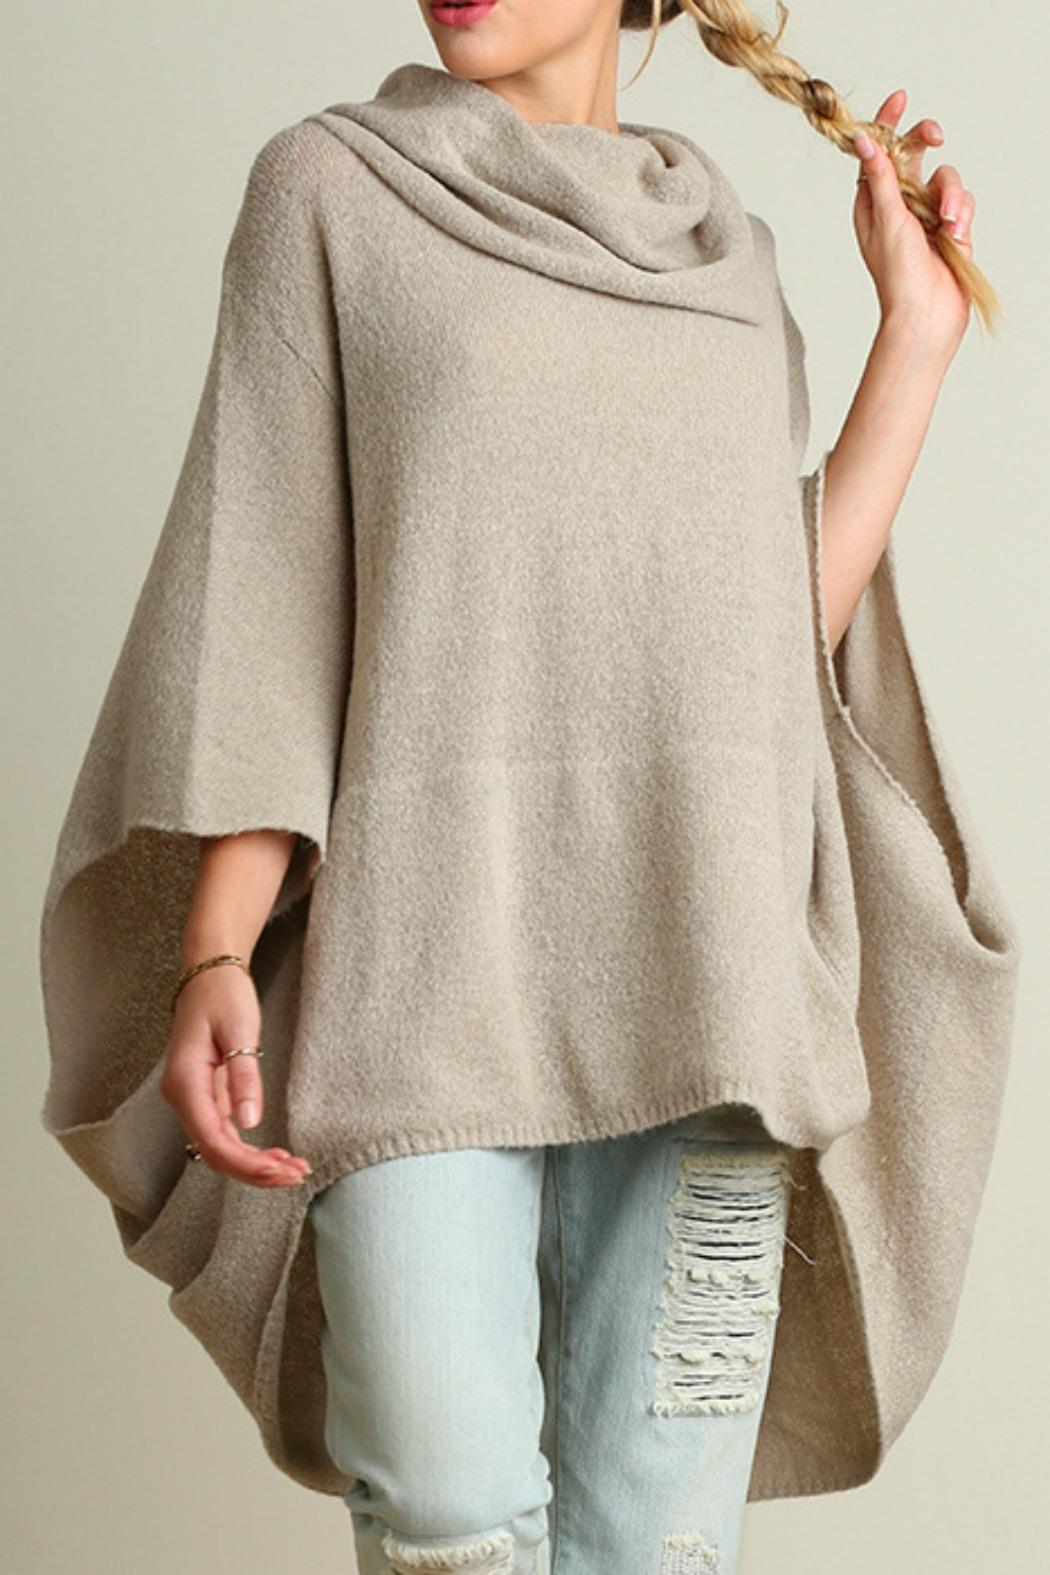 Umgee USA Cowl Neck Poncho from Texas by BareTrees Boutique ...